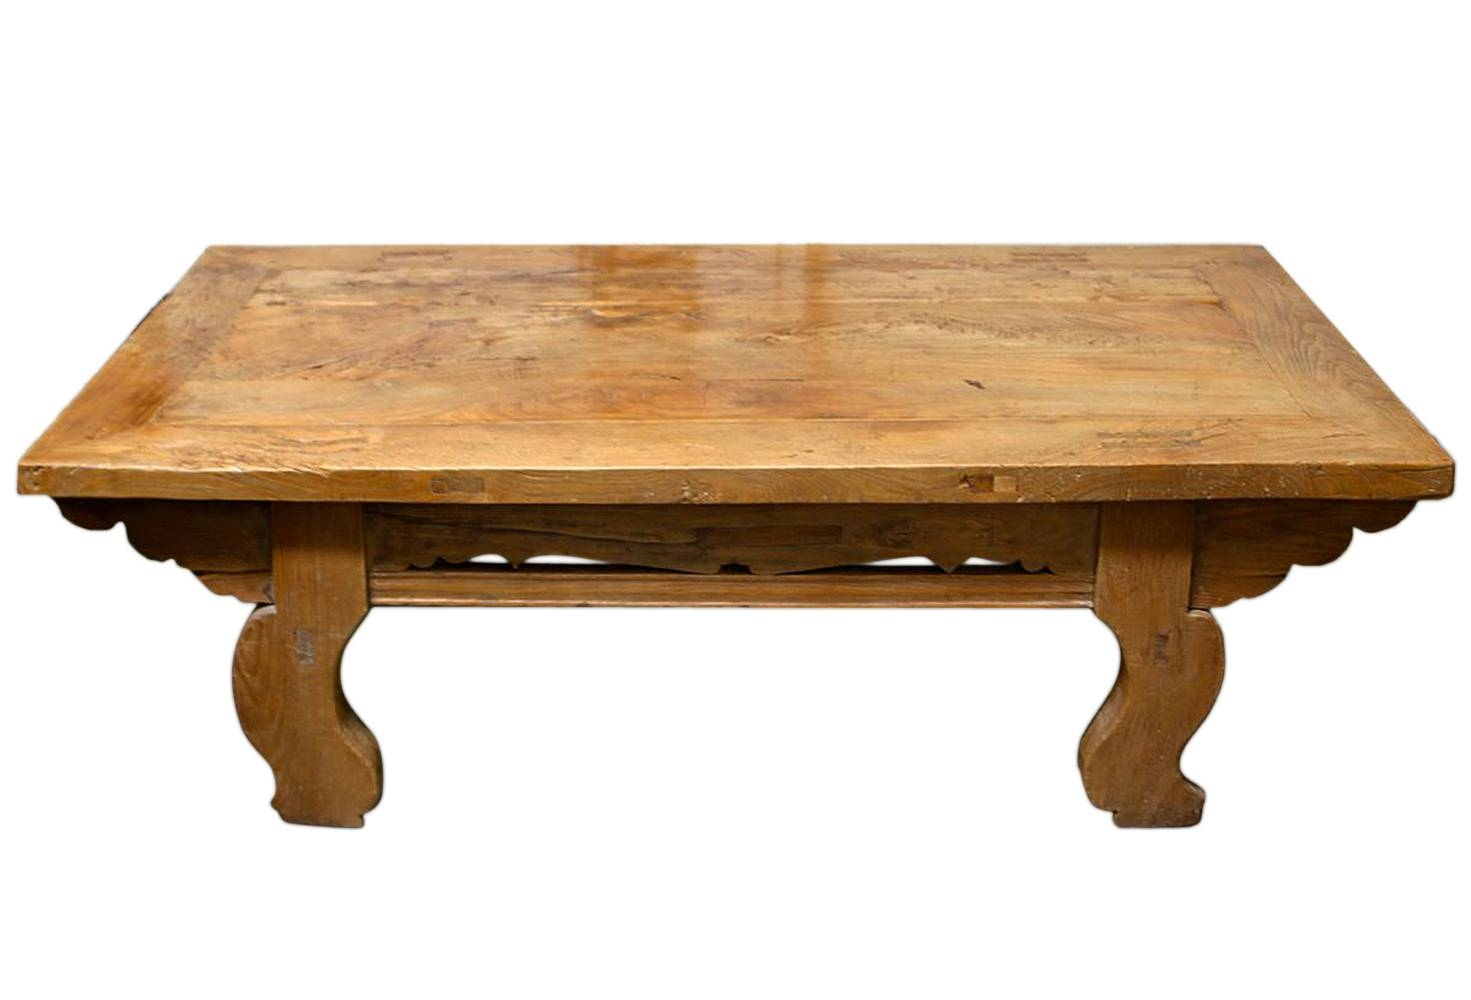 Antique Asian Pine Daybed Coffee Table | Omero Home in Asian Coffee Tables (Image 2 of 30)